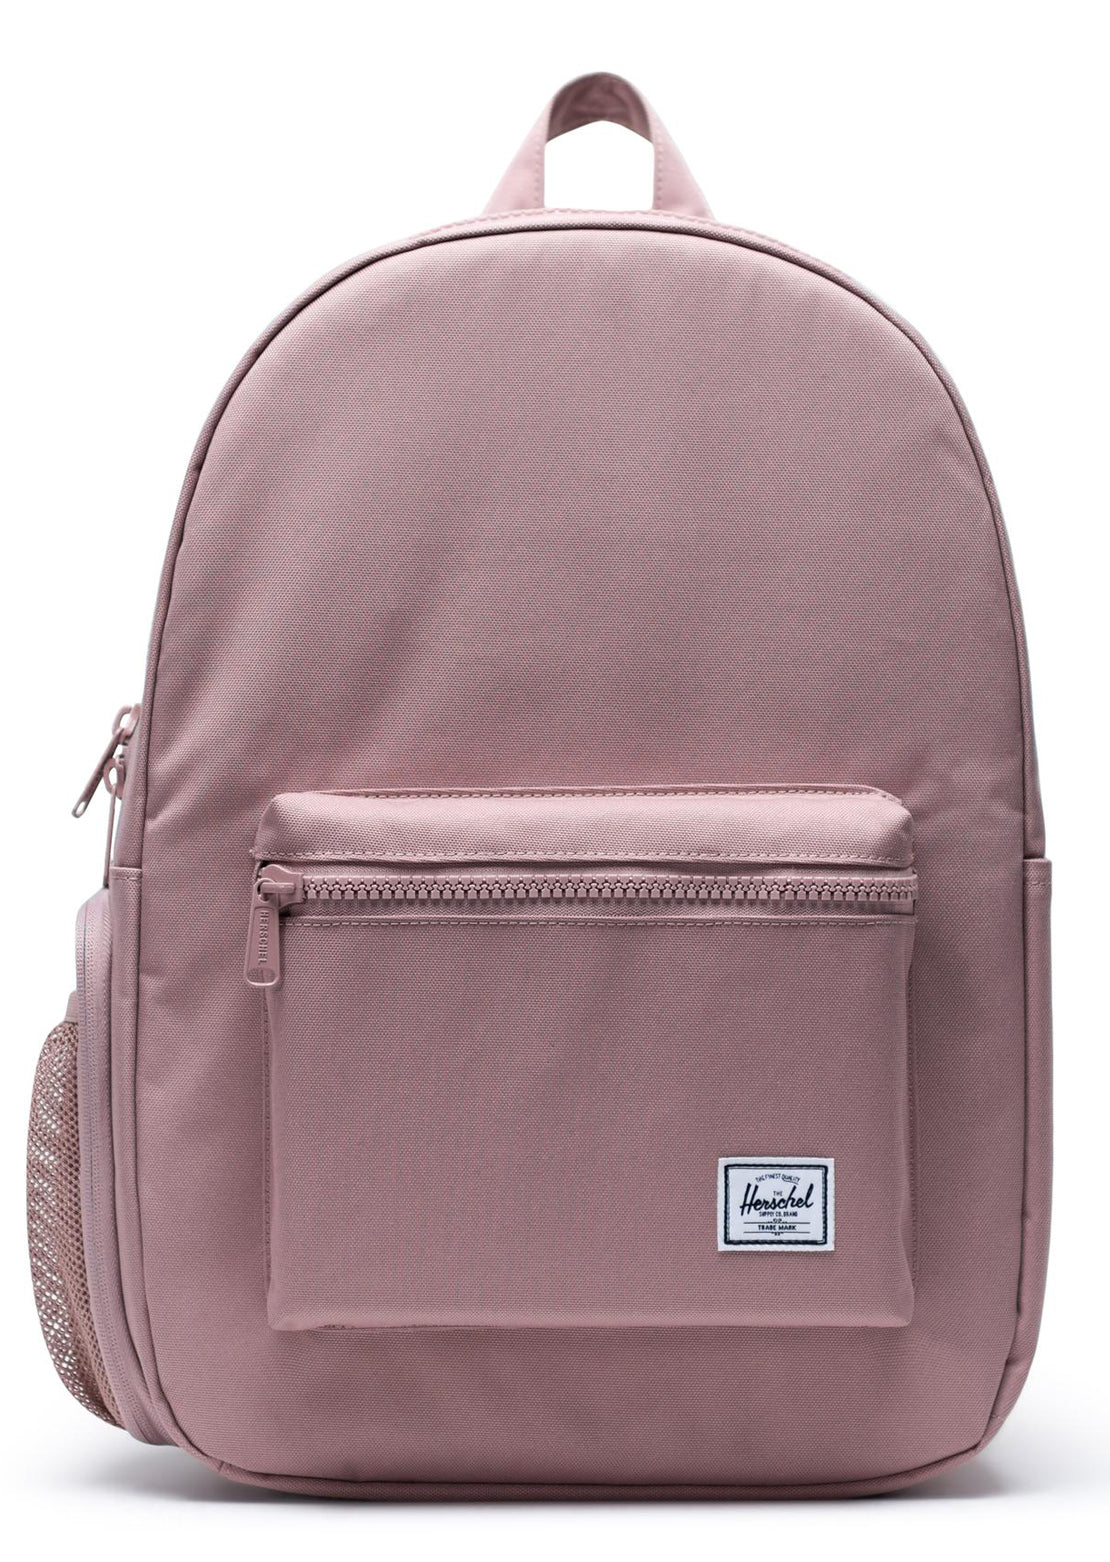 Herschel Settlement Sprout Diaper Backpack Ash Rose